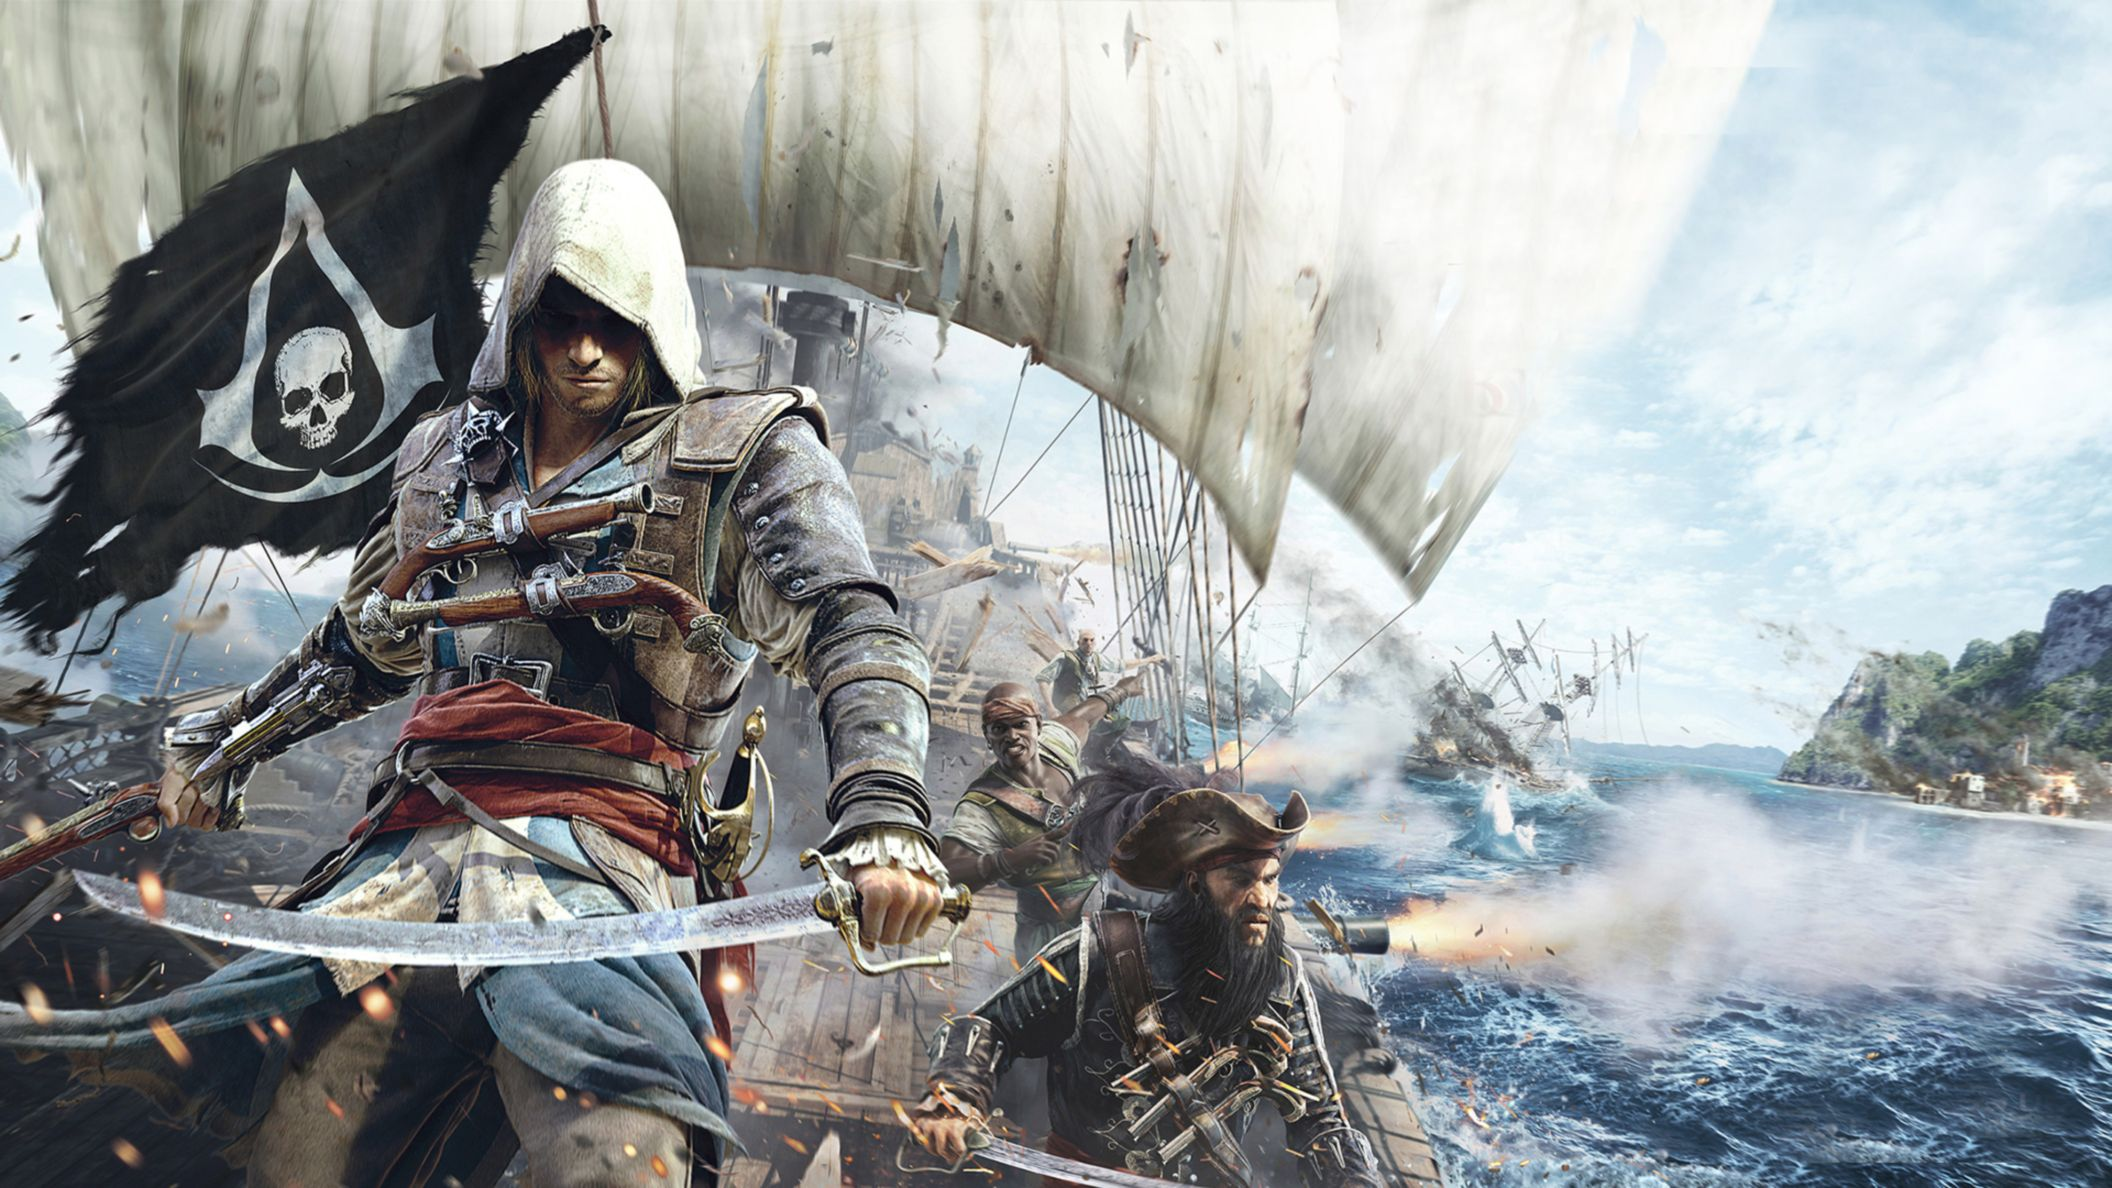 Download free HD Assassins Creed 4 Black Flag Game 2 HD Wallpaper, image